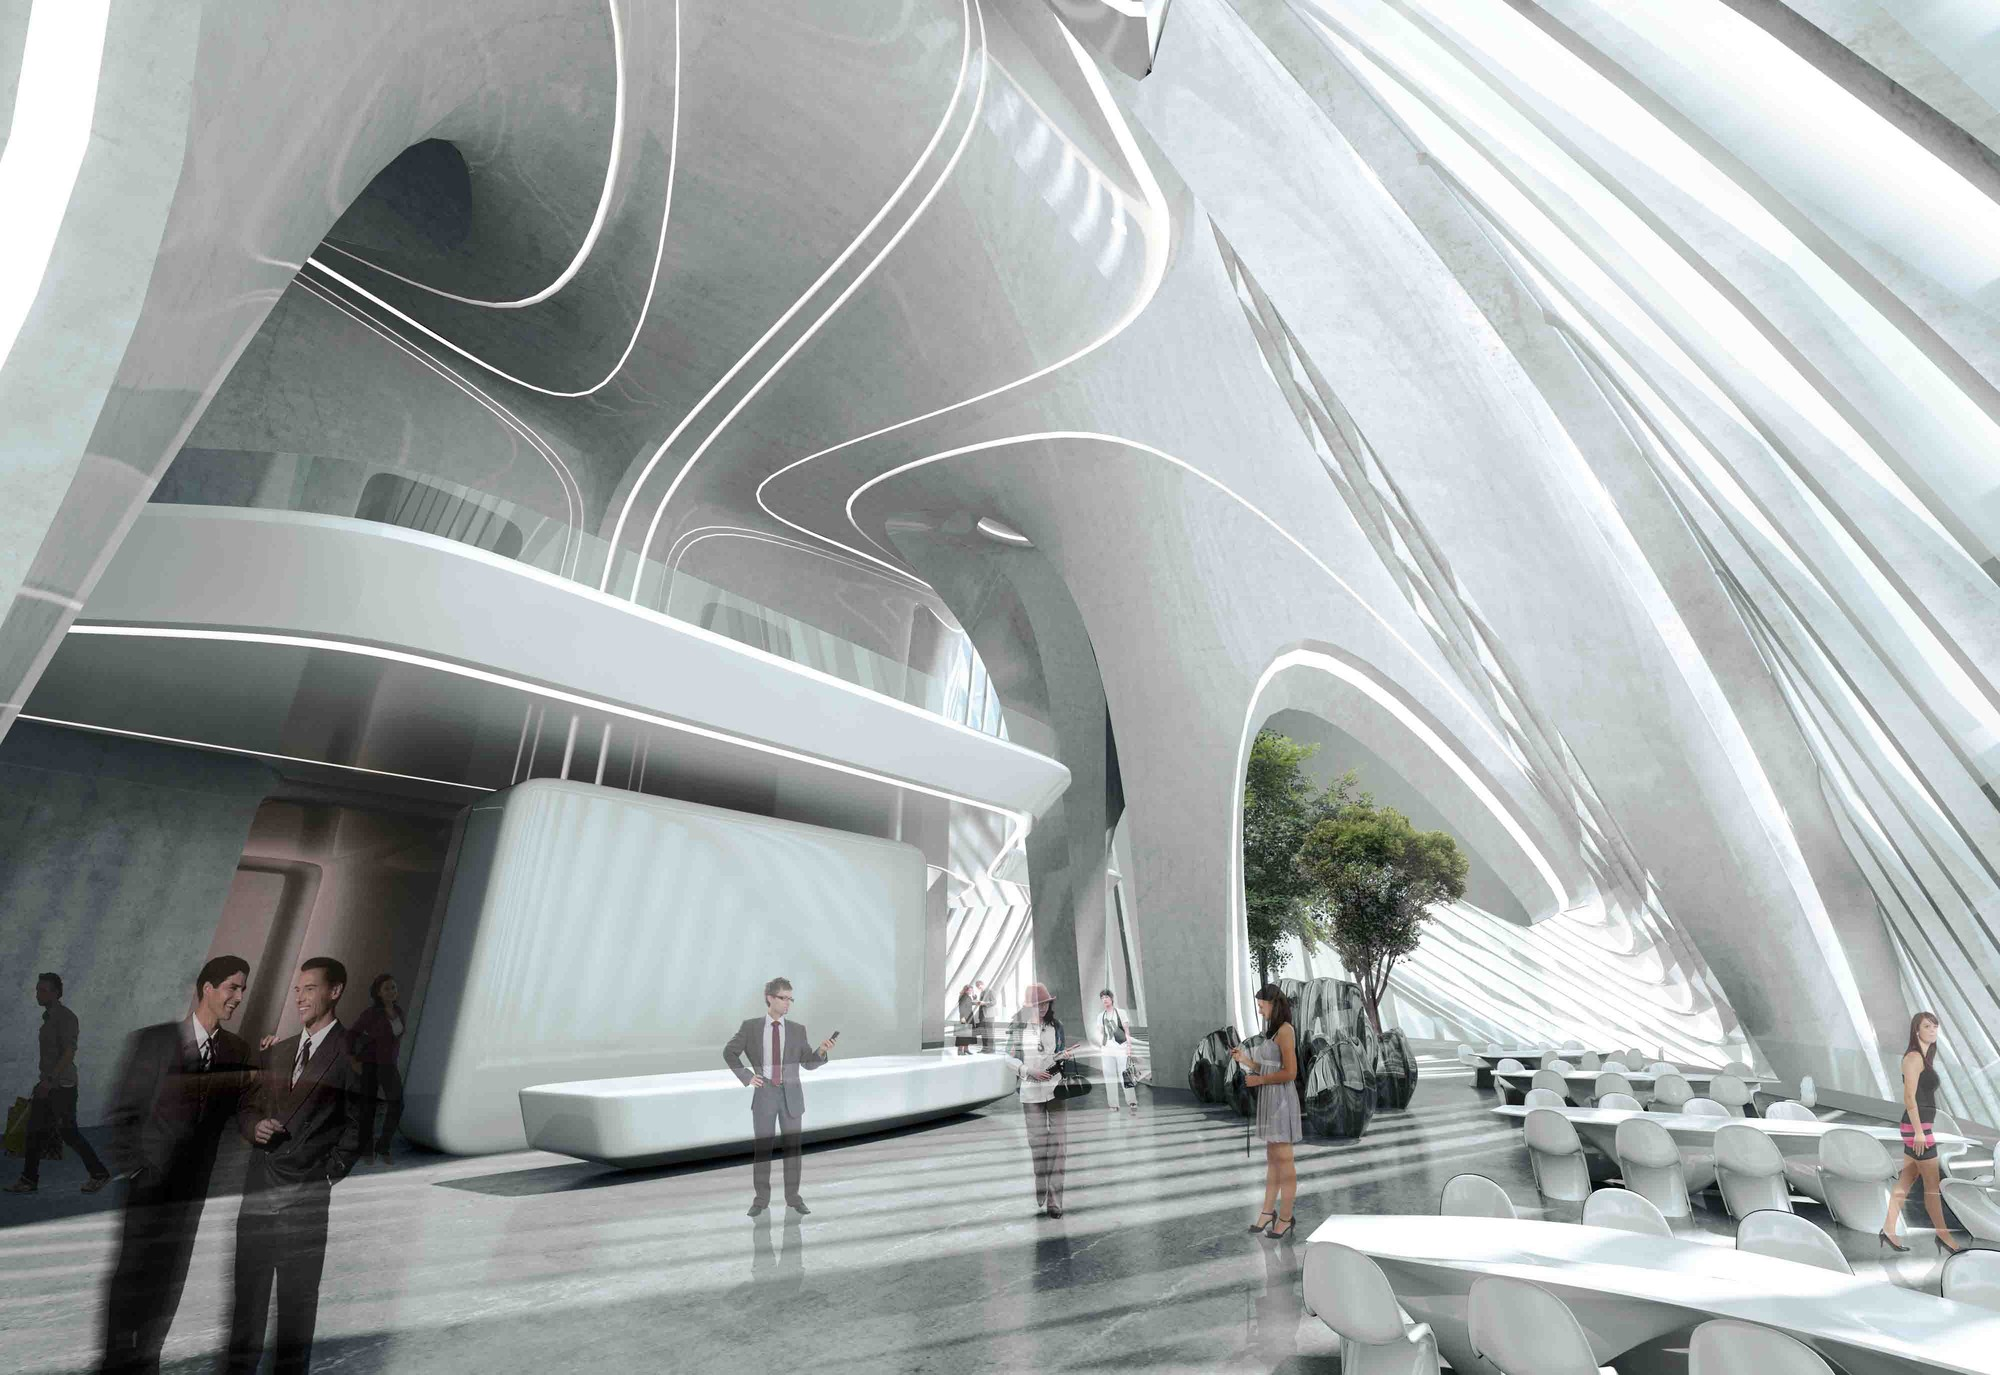 Cortesia de Zaha Hadid Architects